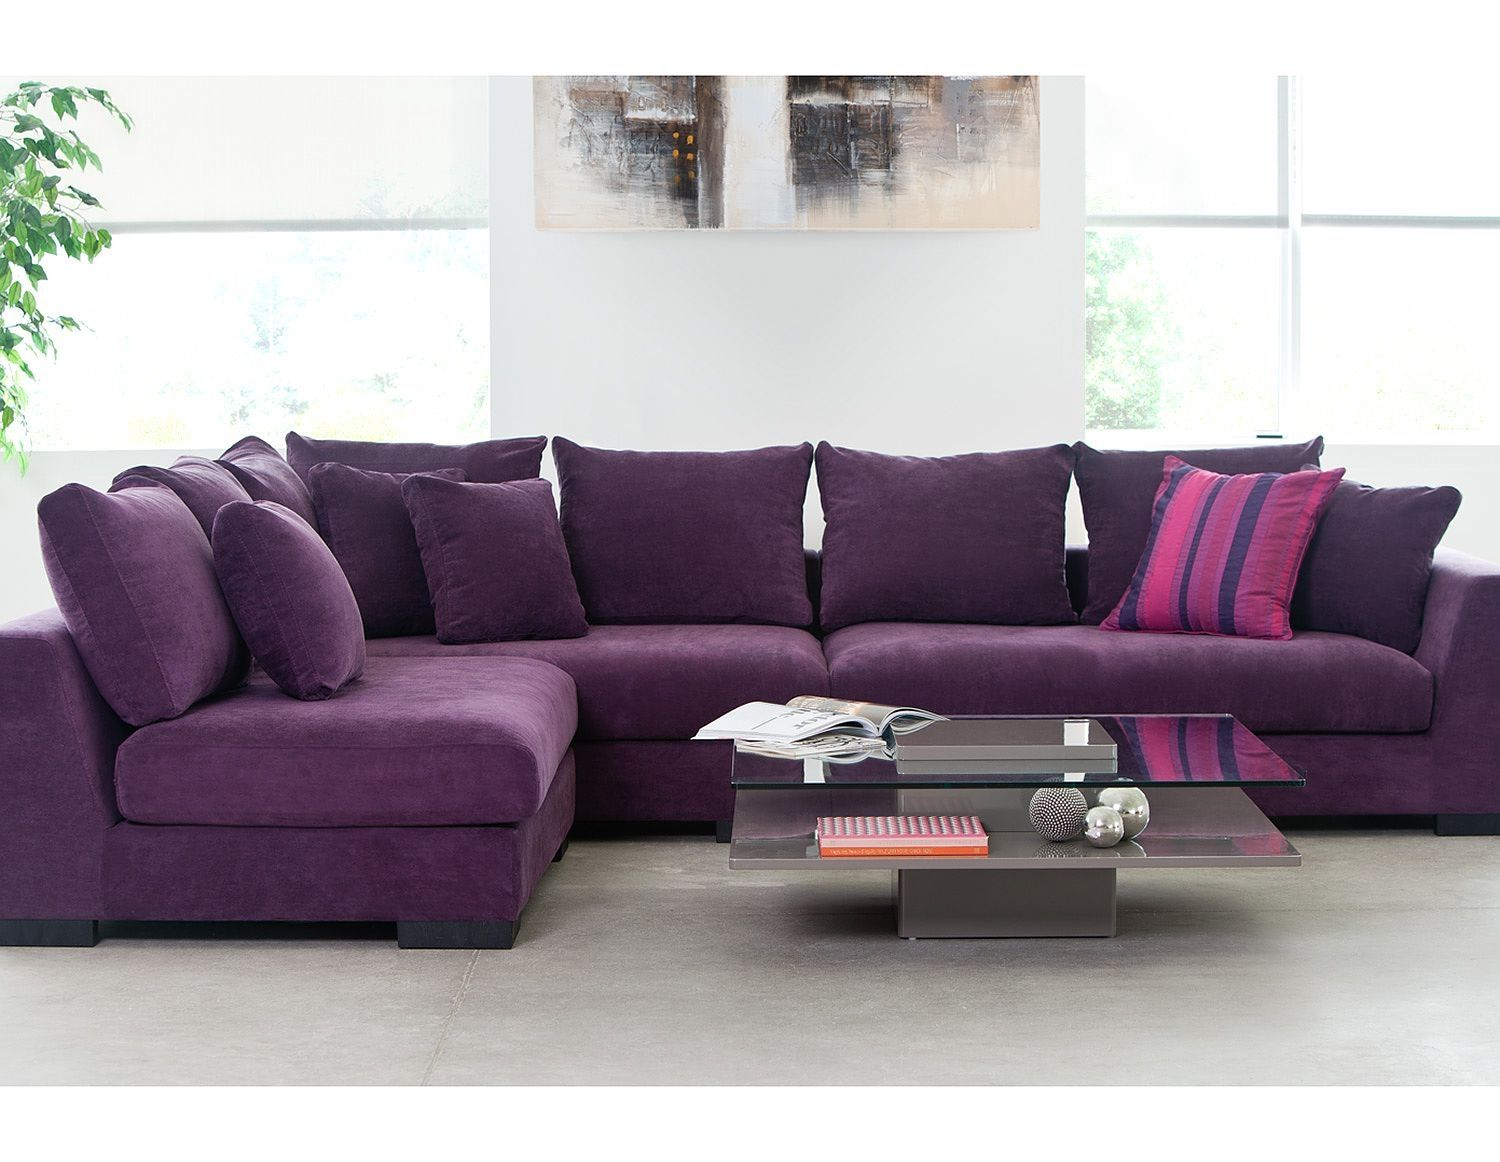 eggplant color sofa off white and loveseat sectional colored